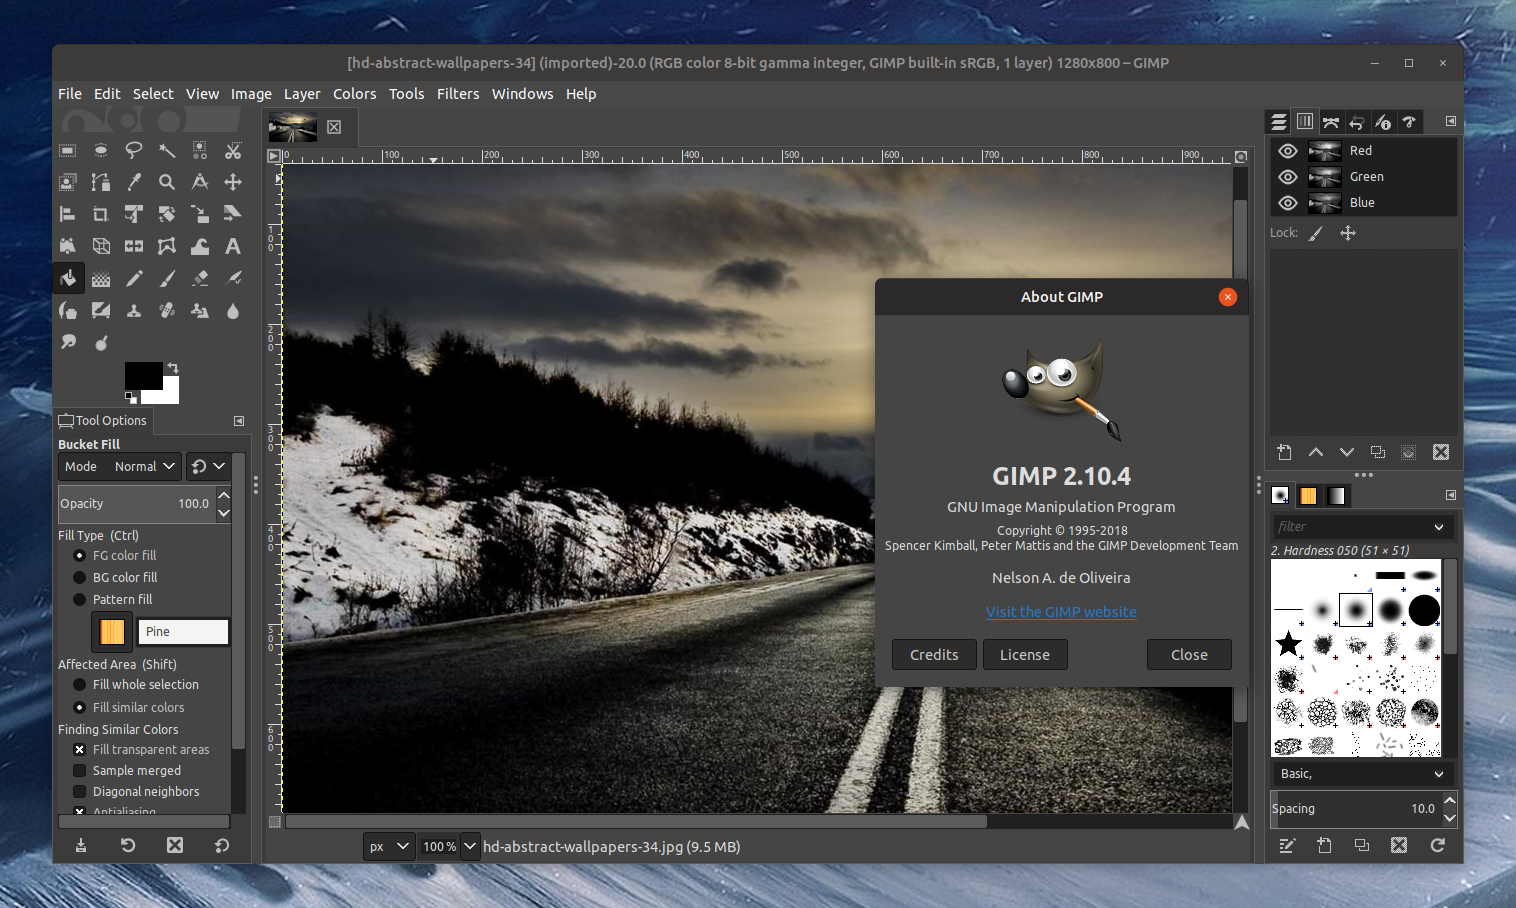 How to Download and Install GIMP for PC